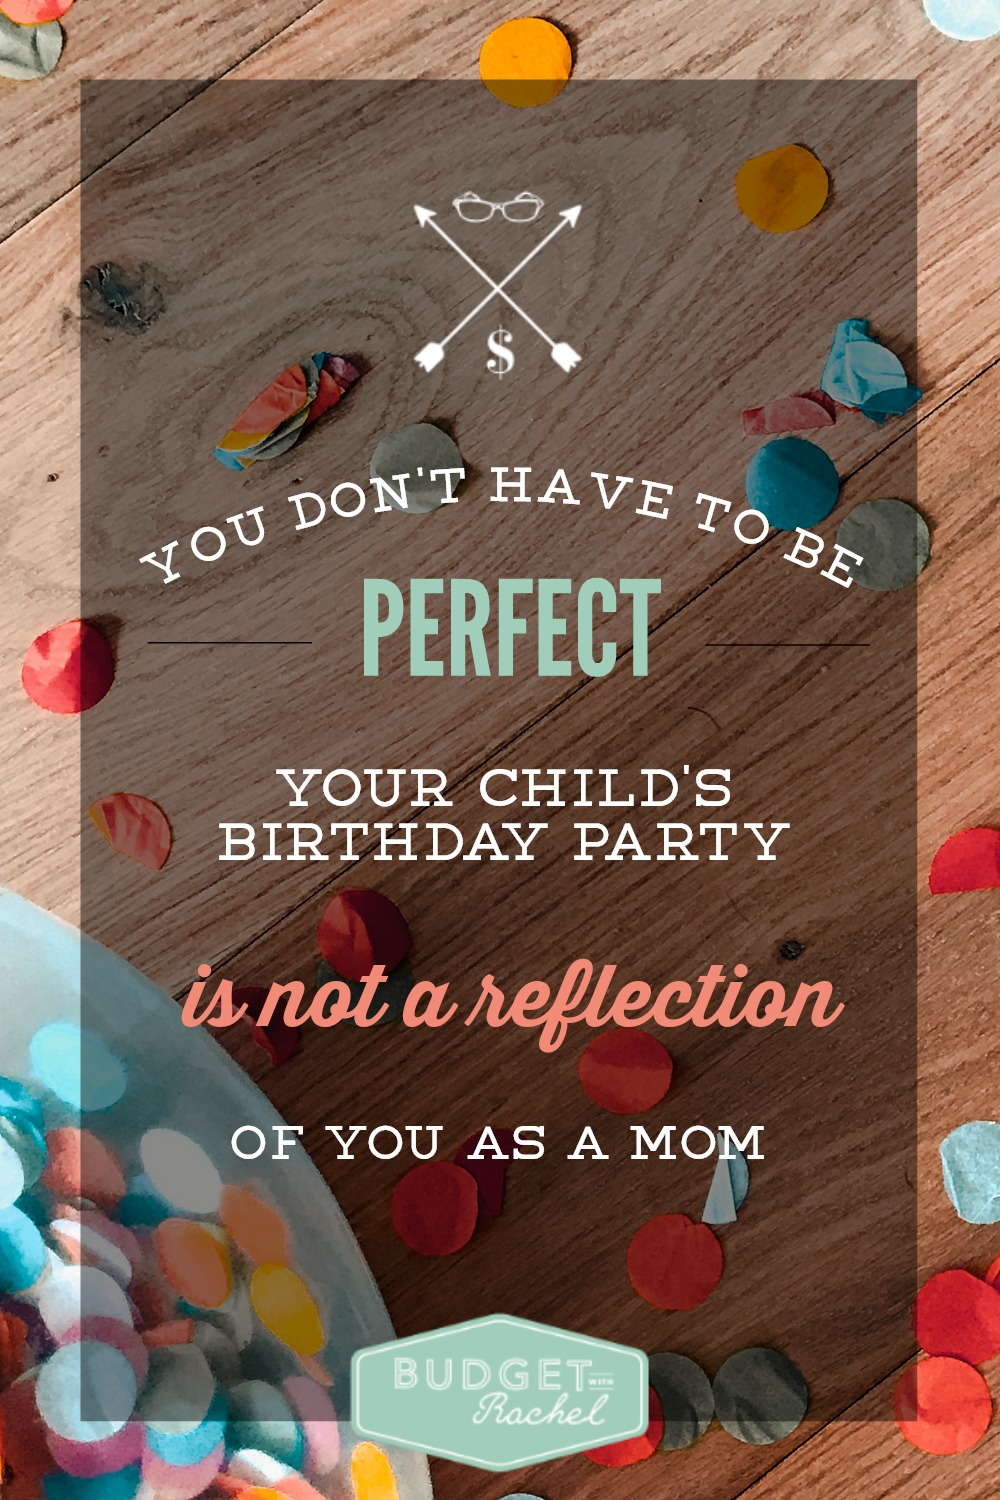 Why I Won't Spend More Than $50 On My Child's Birthday Party (...and I Don't Feel Bad About It!) This made me feel so much better about planning my child's birthday party. I am going to keep reading this if I feel stressed about party planning. All of these reasons are so true and I am never spending more than $50 on a birthday party ever again!